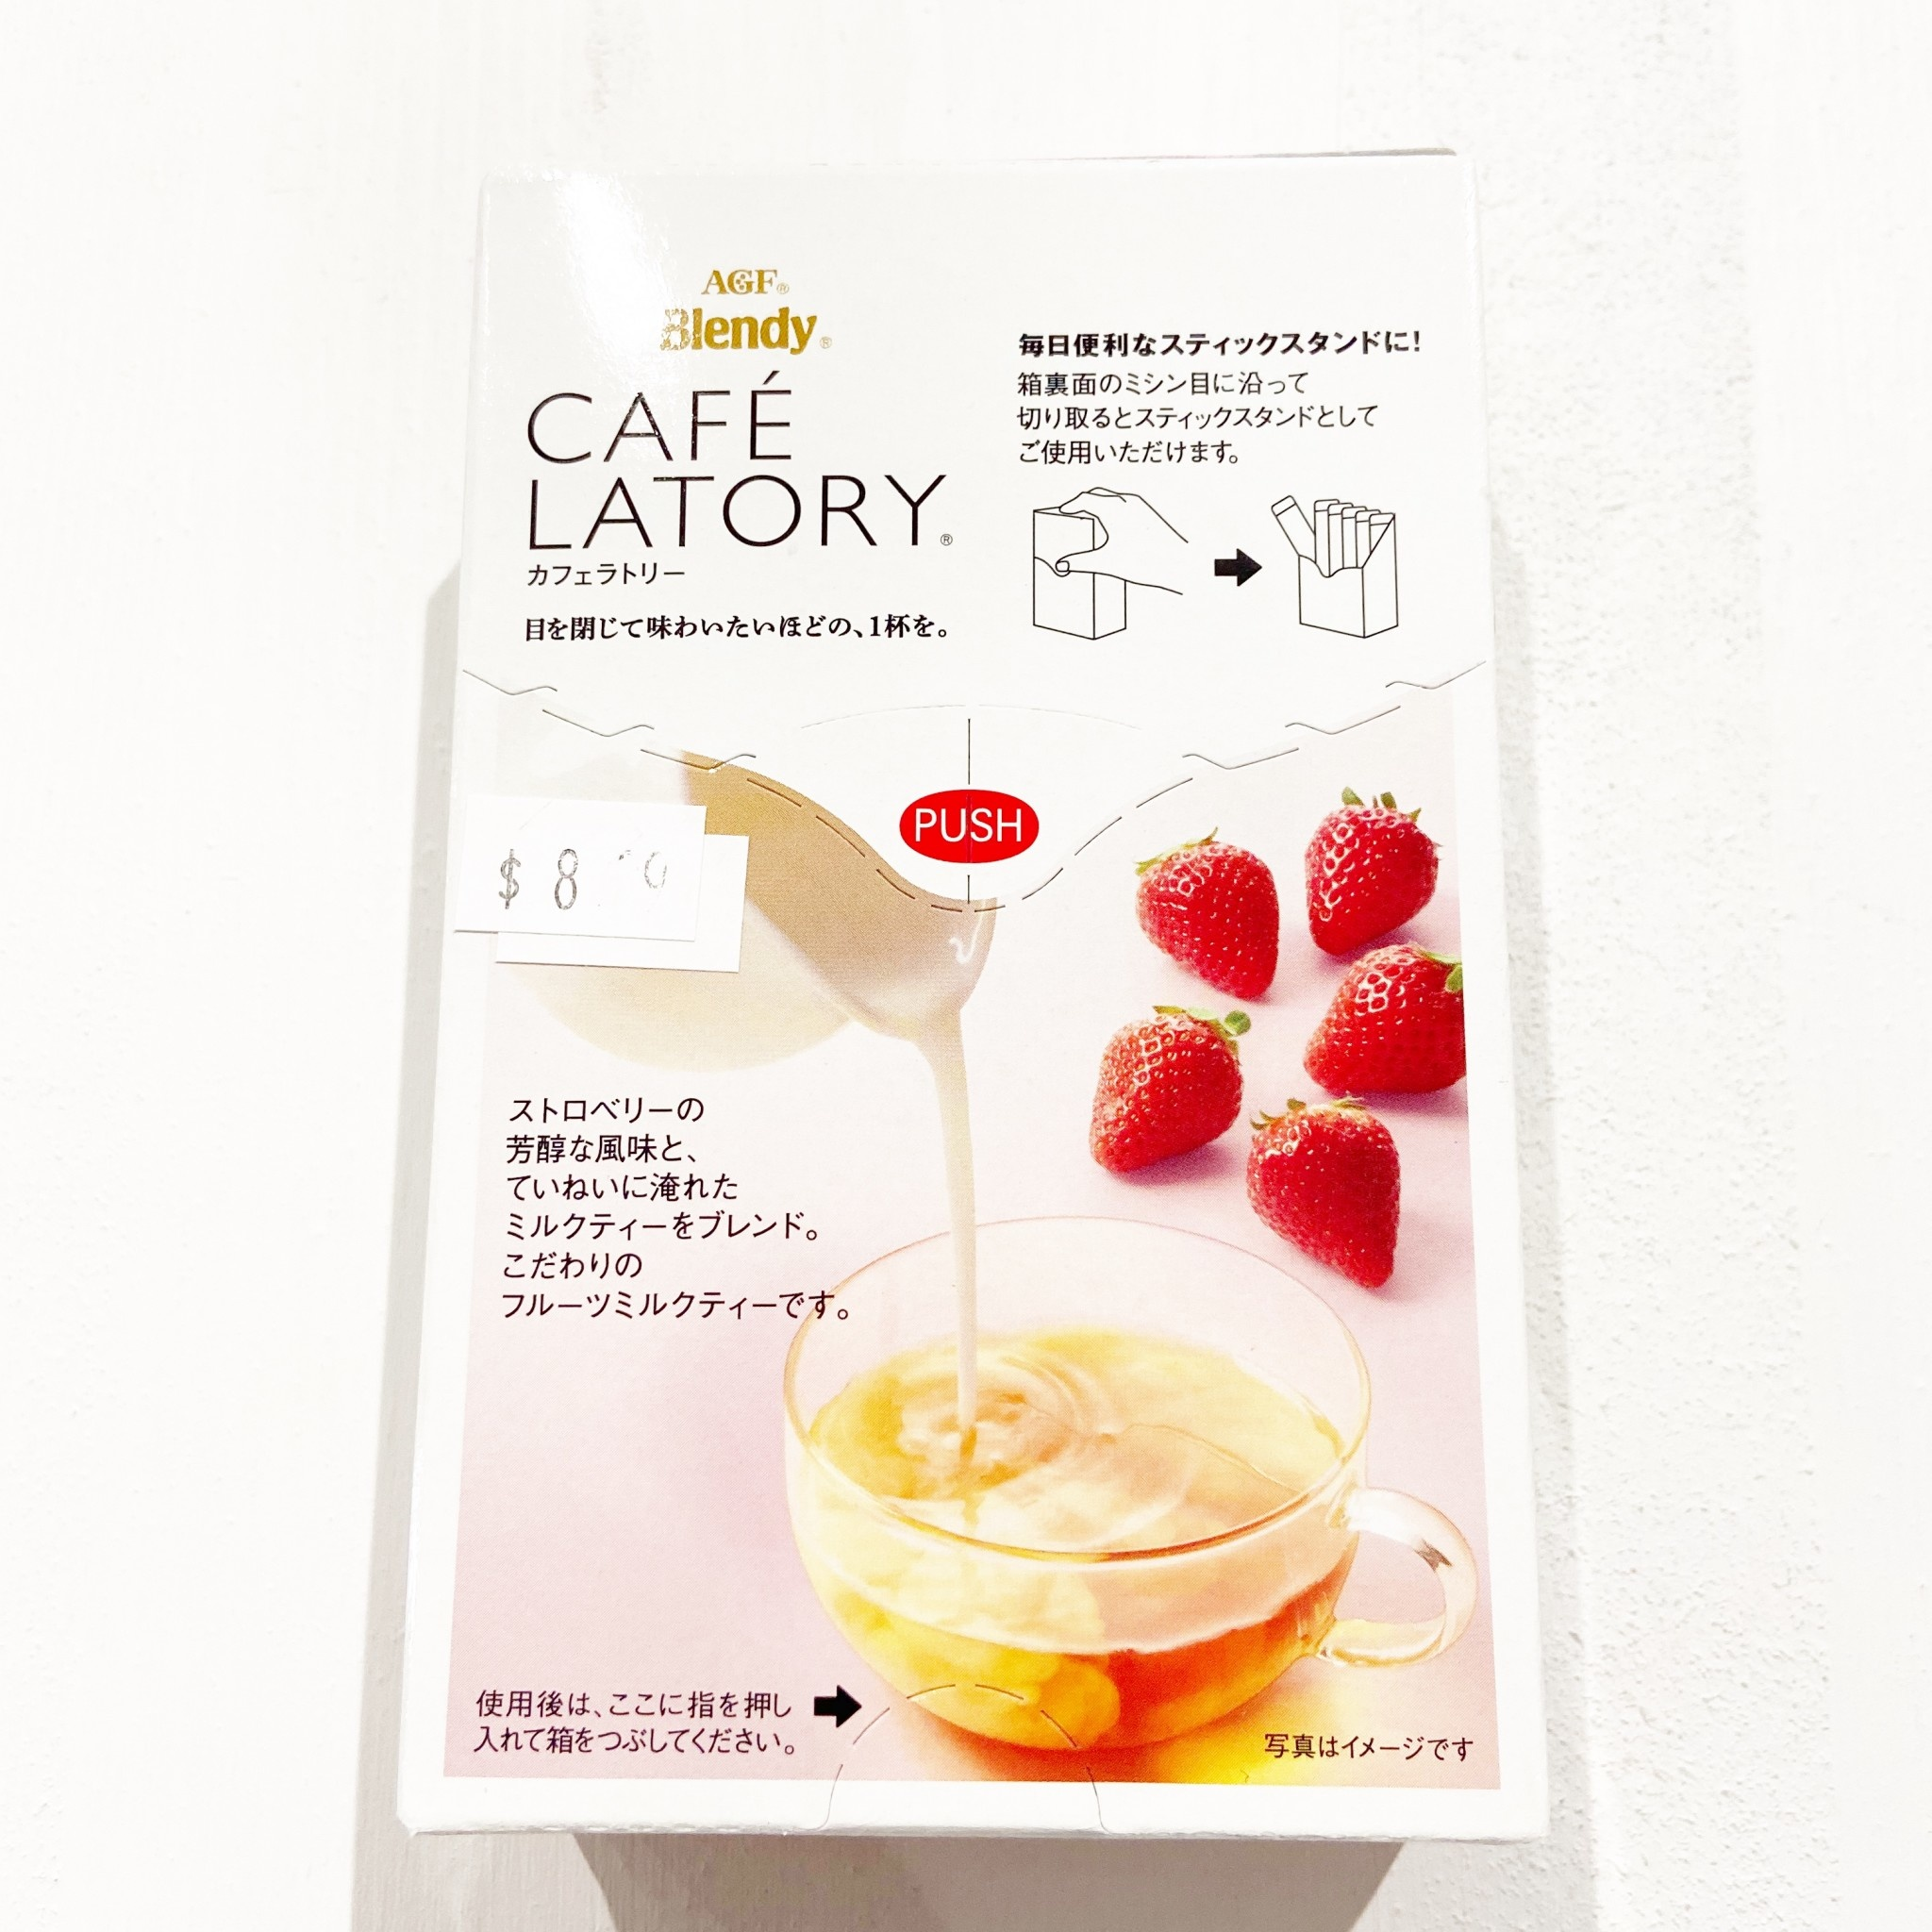 AGF Blendy Cafe Latory Milk Tea Strawberry Flavor